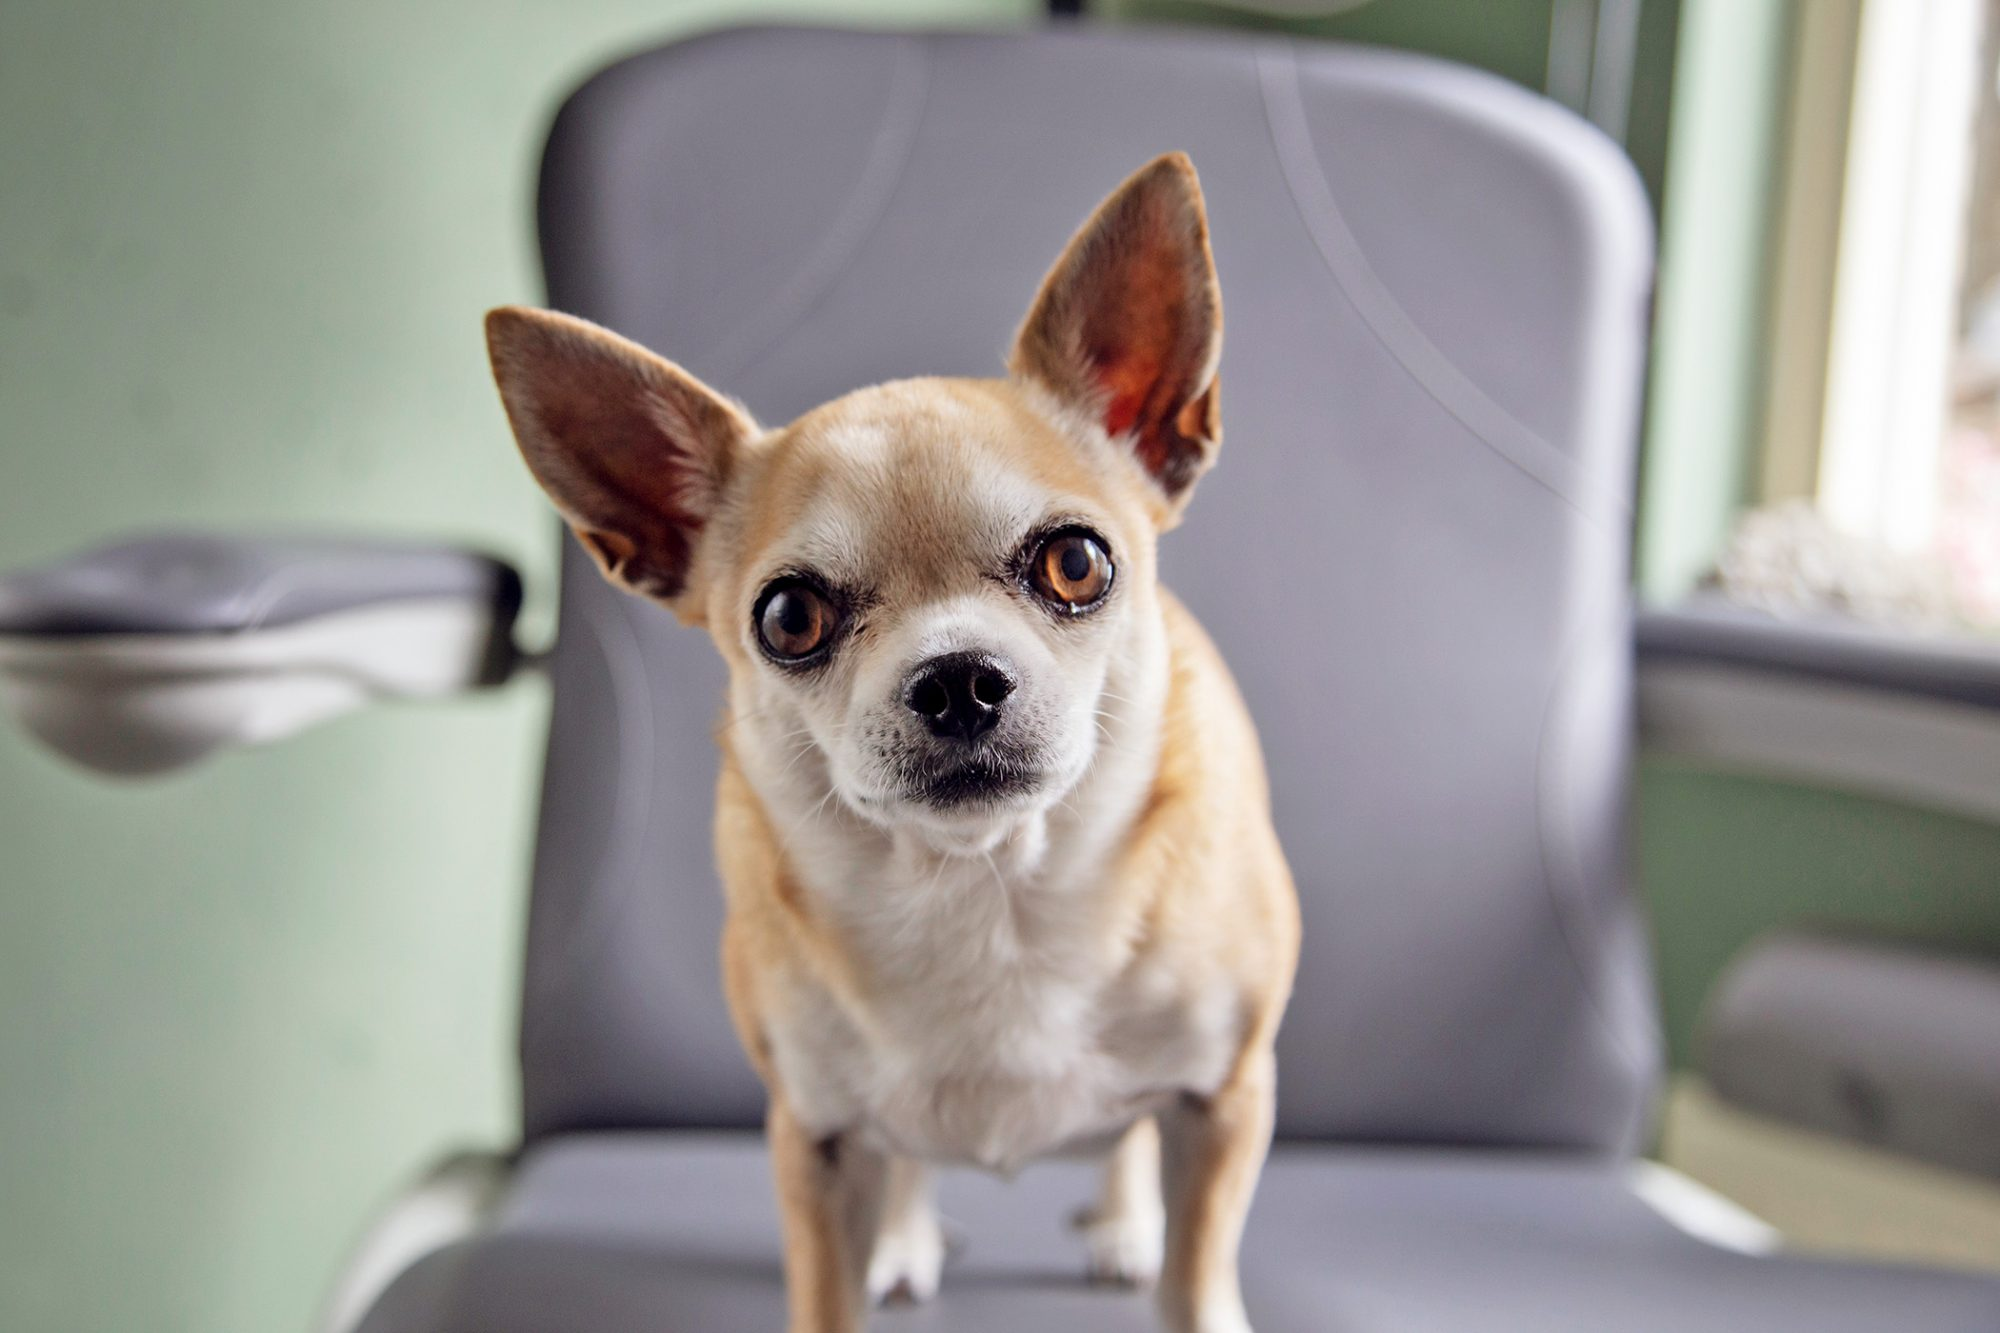 Chihuahua standing in an office chair